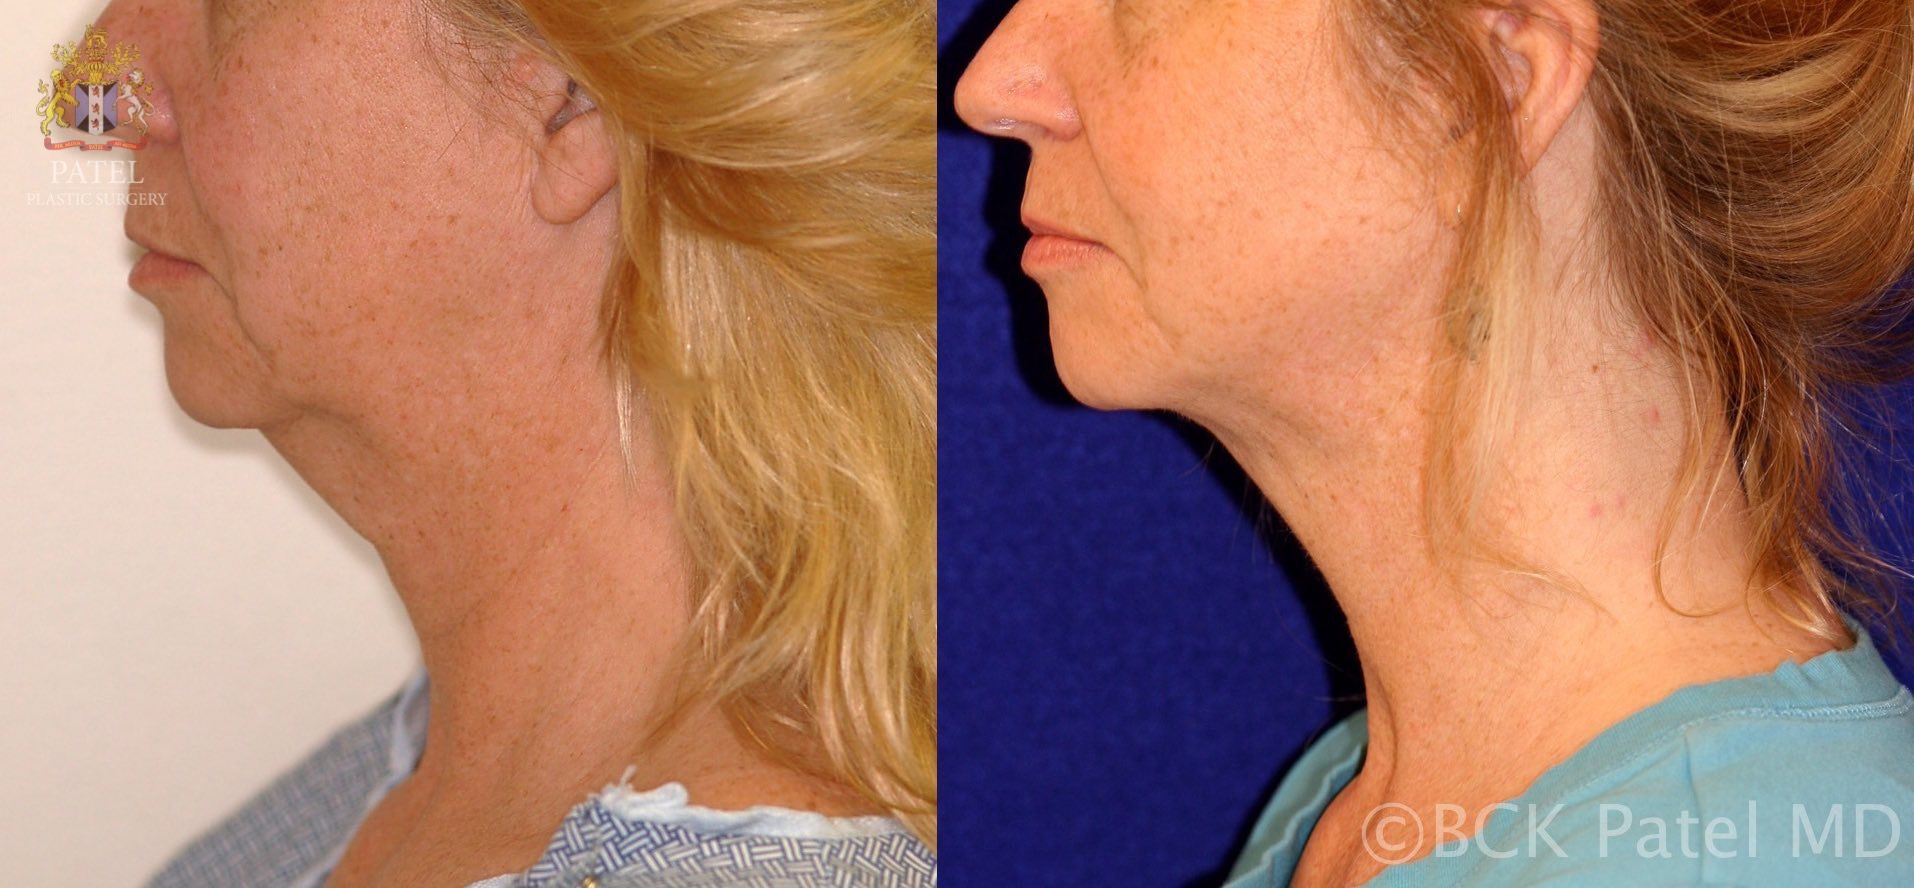 englishsurgeon.com Results of Vaser neck liposuction in Salt Lake City by Dr. BCK Patel MD, FRCS and St. George